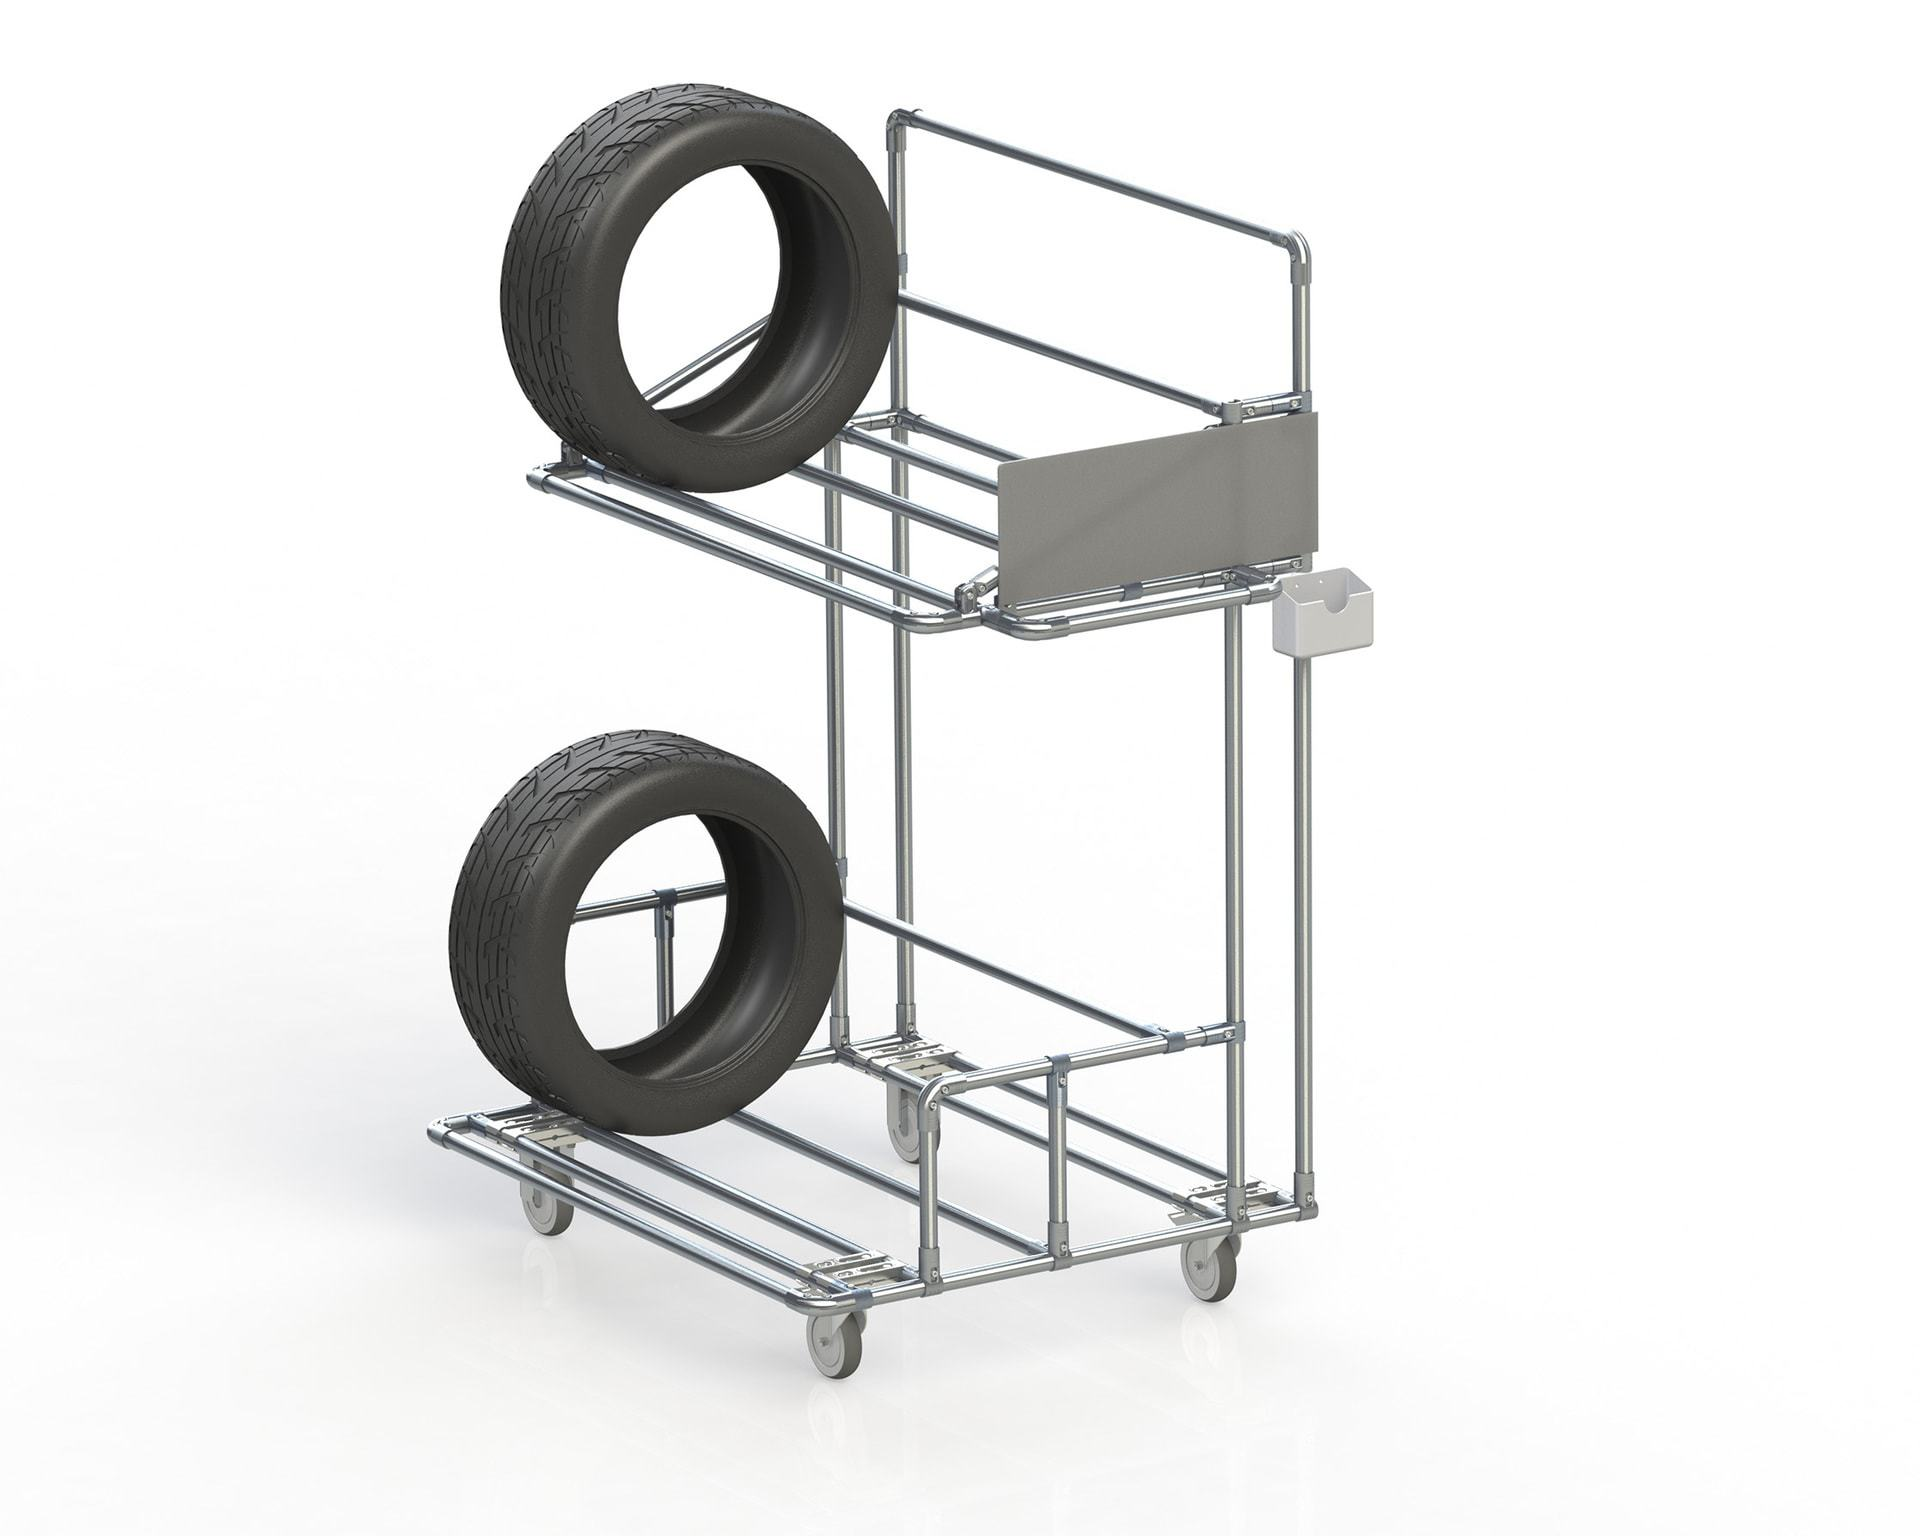 PEK3 Easytube Application Tire Rack